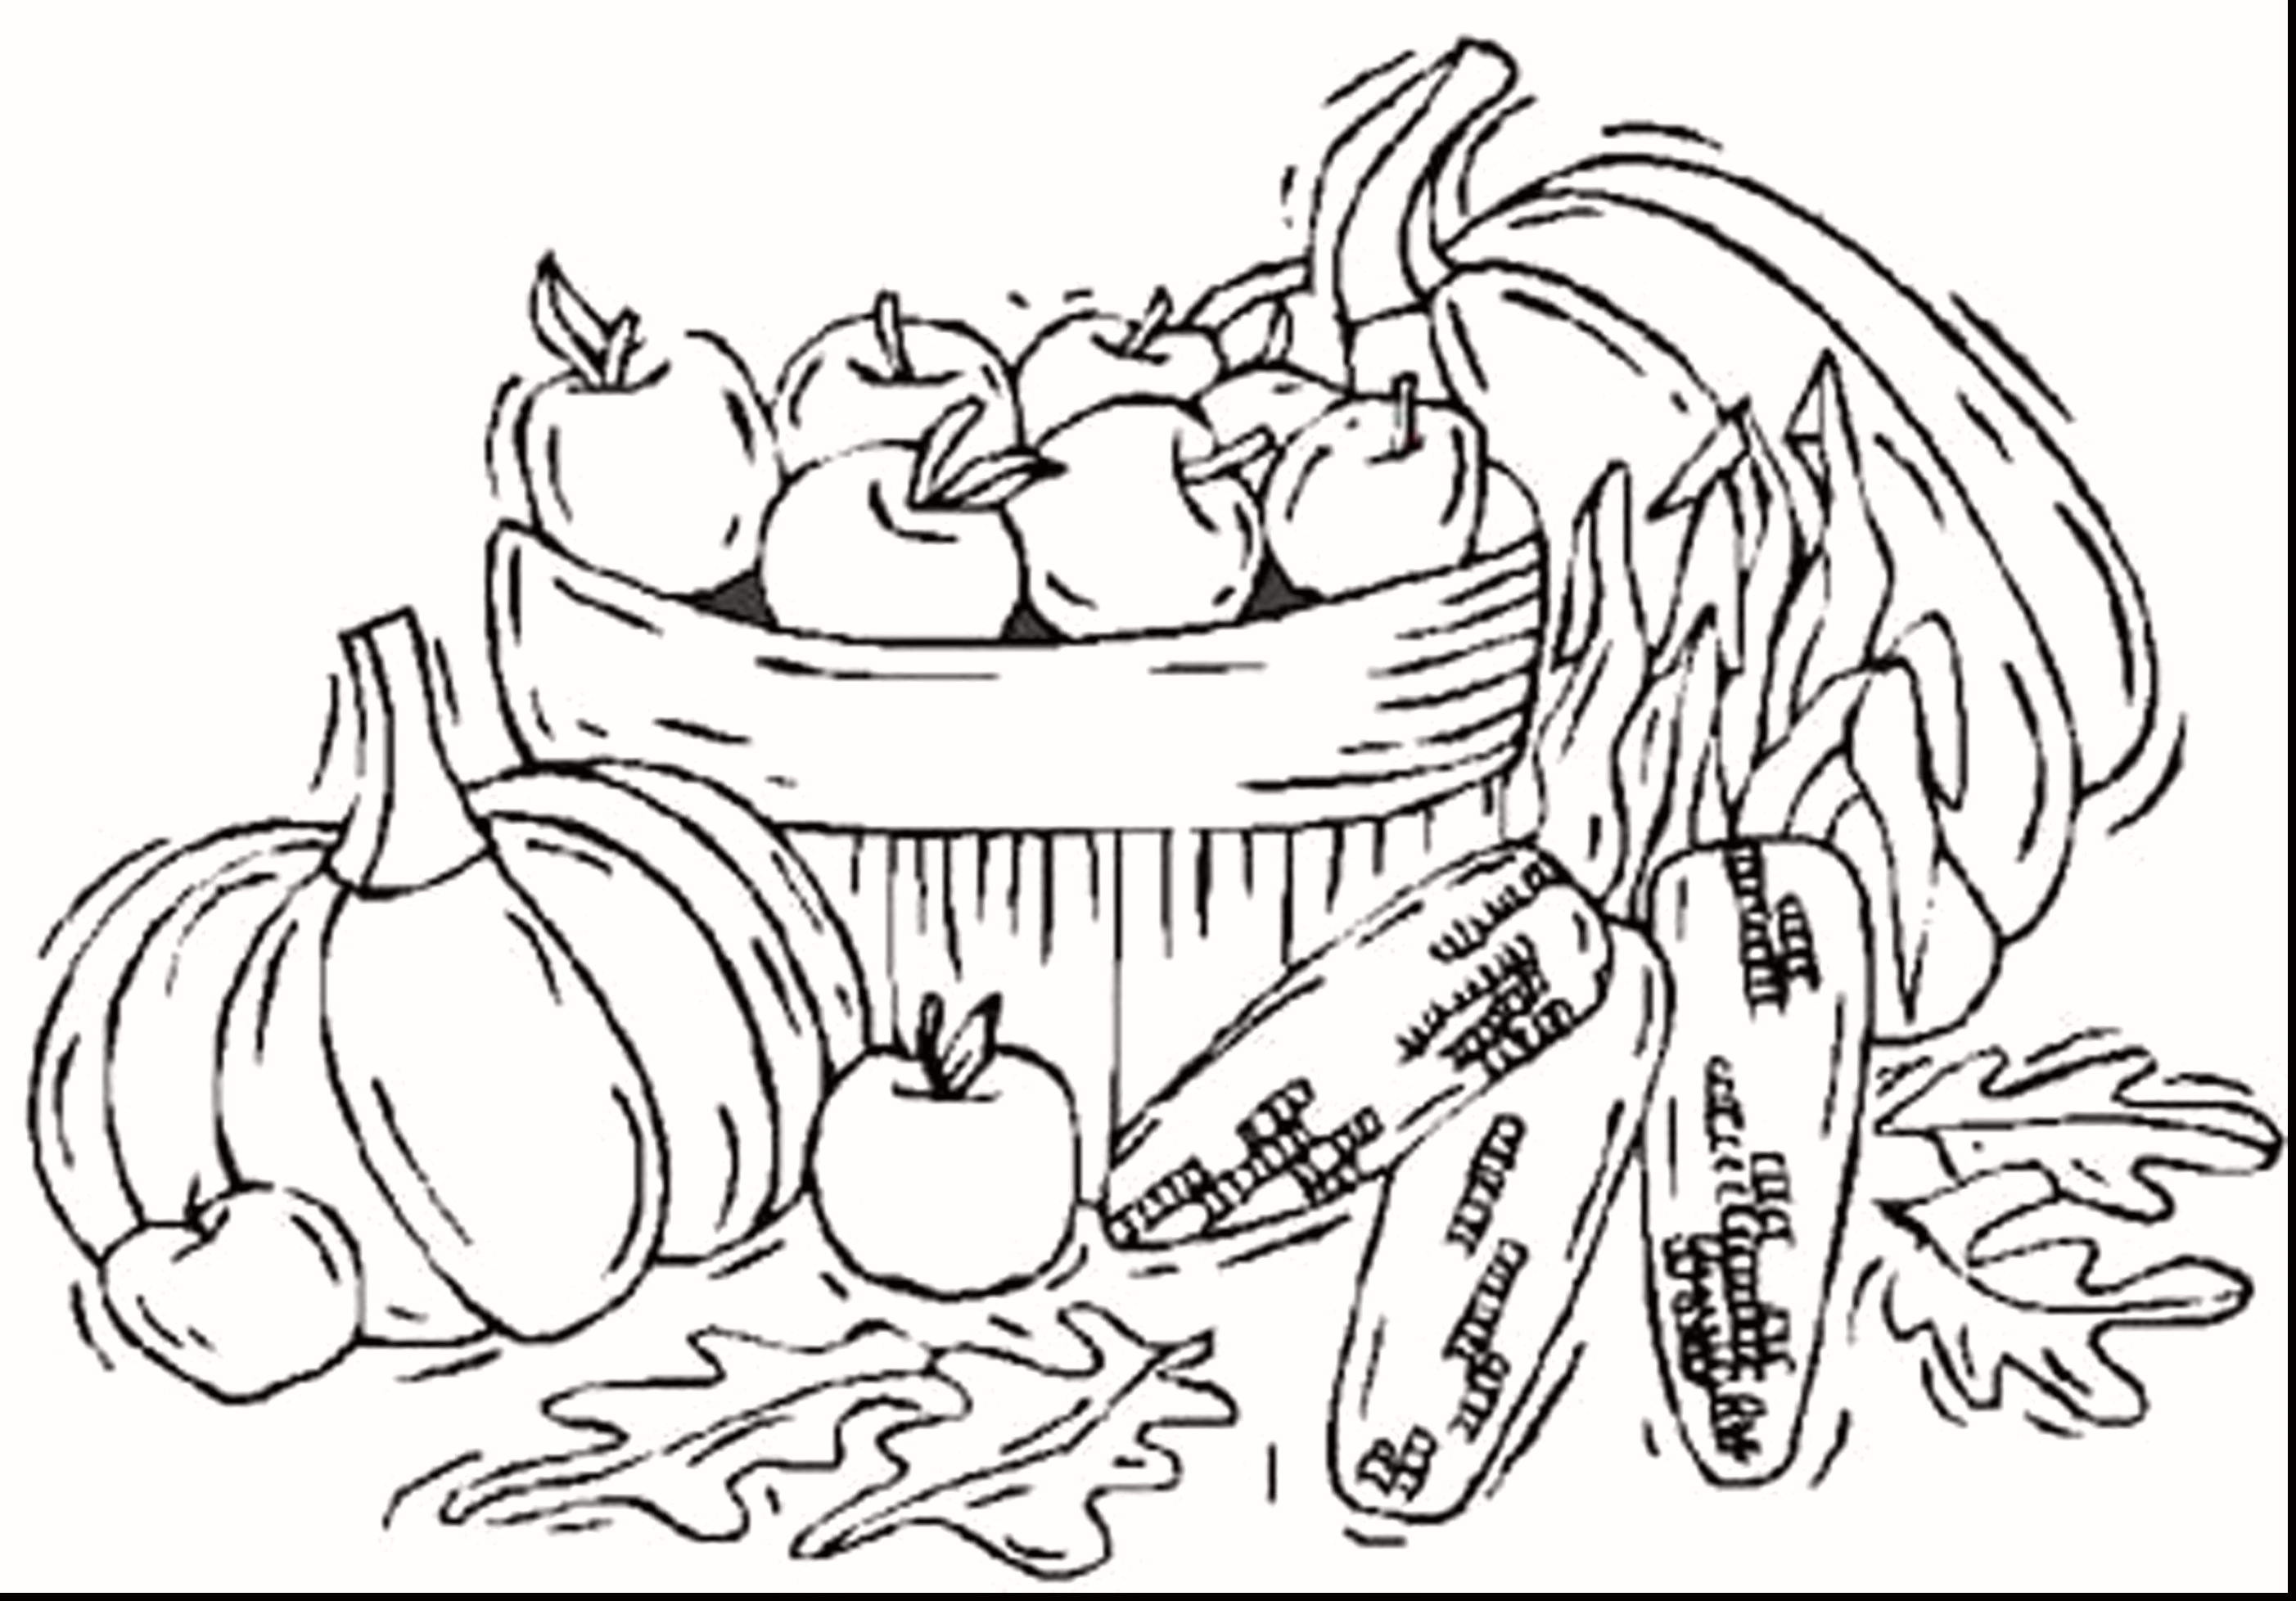 prinatable coloring pages Collection-Www Printable Coloring Pages Printable Color Pages for Adults Awesome Fall Coloring Pages 0d Page 19-q